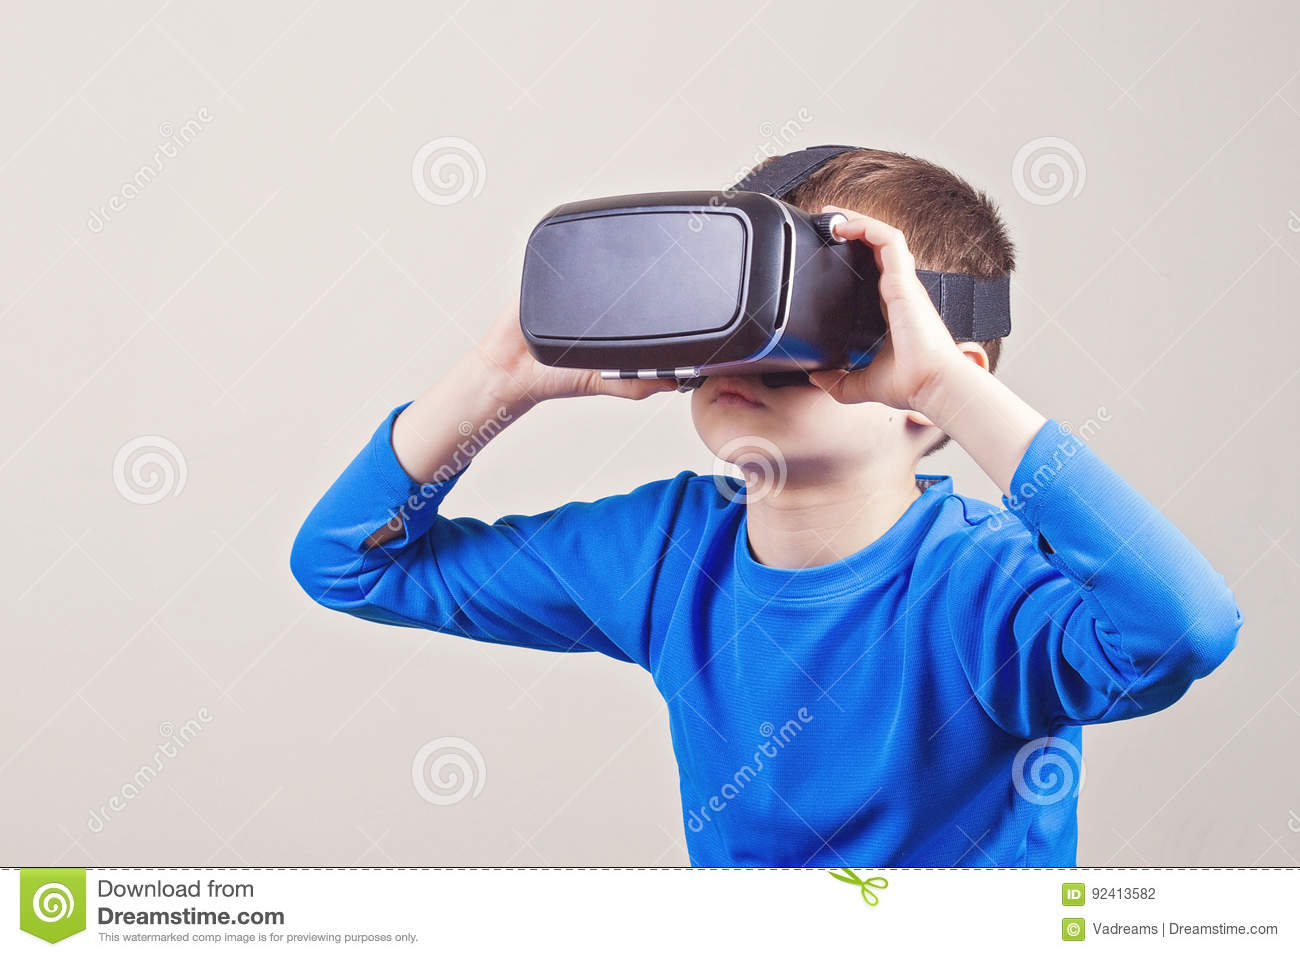 ec4d7c5cdb71 Little kid wearing virtual reality VR goggles watching movies or playing  video games